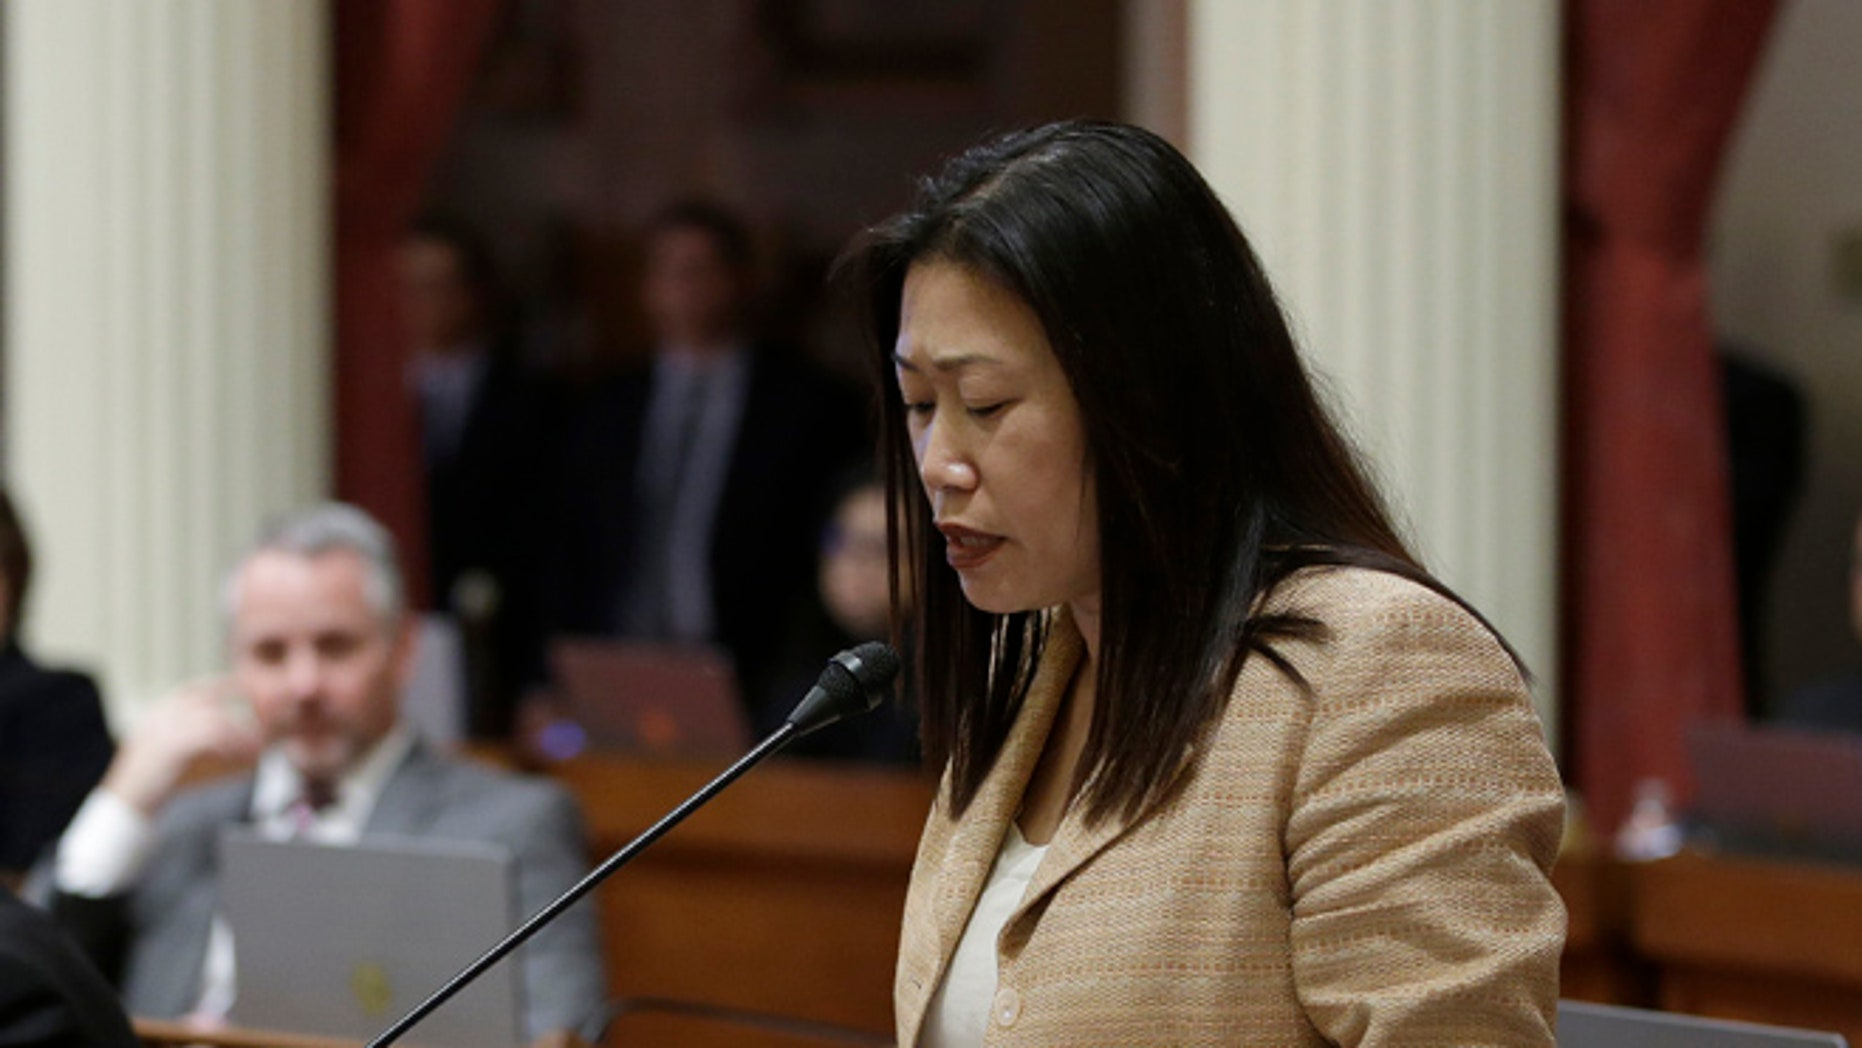 FILE: Feb. 23, 2017: California state GOP Sen. Janet Nguyen, removed from the chamber after refusing to end a speech critical of former legislator Tom Hayden and his anti-Vietnam war activism. (AP)